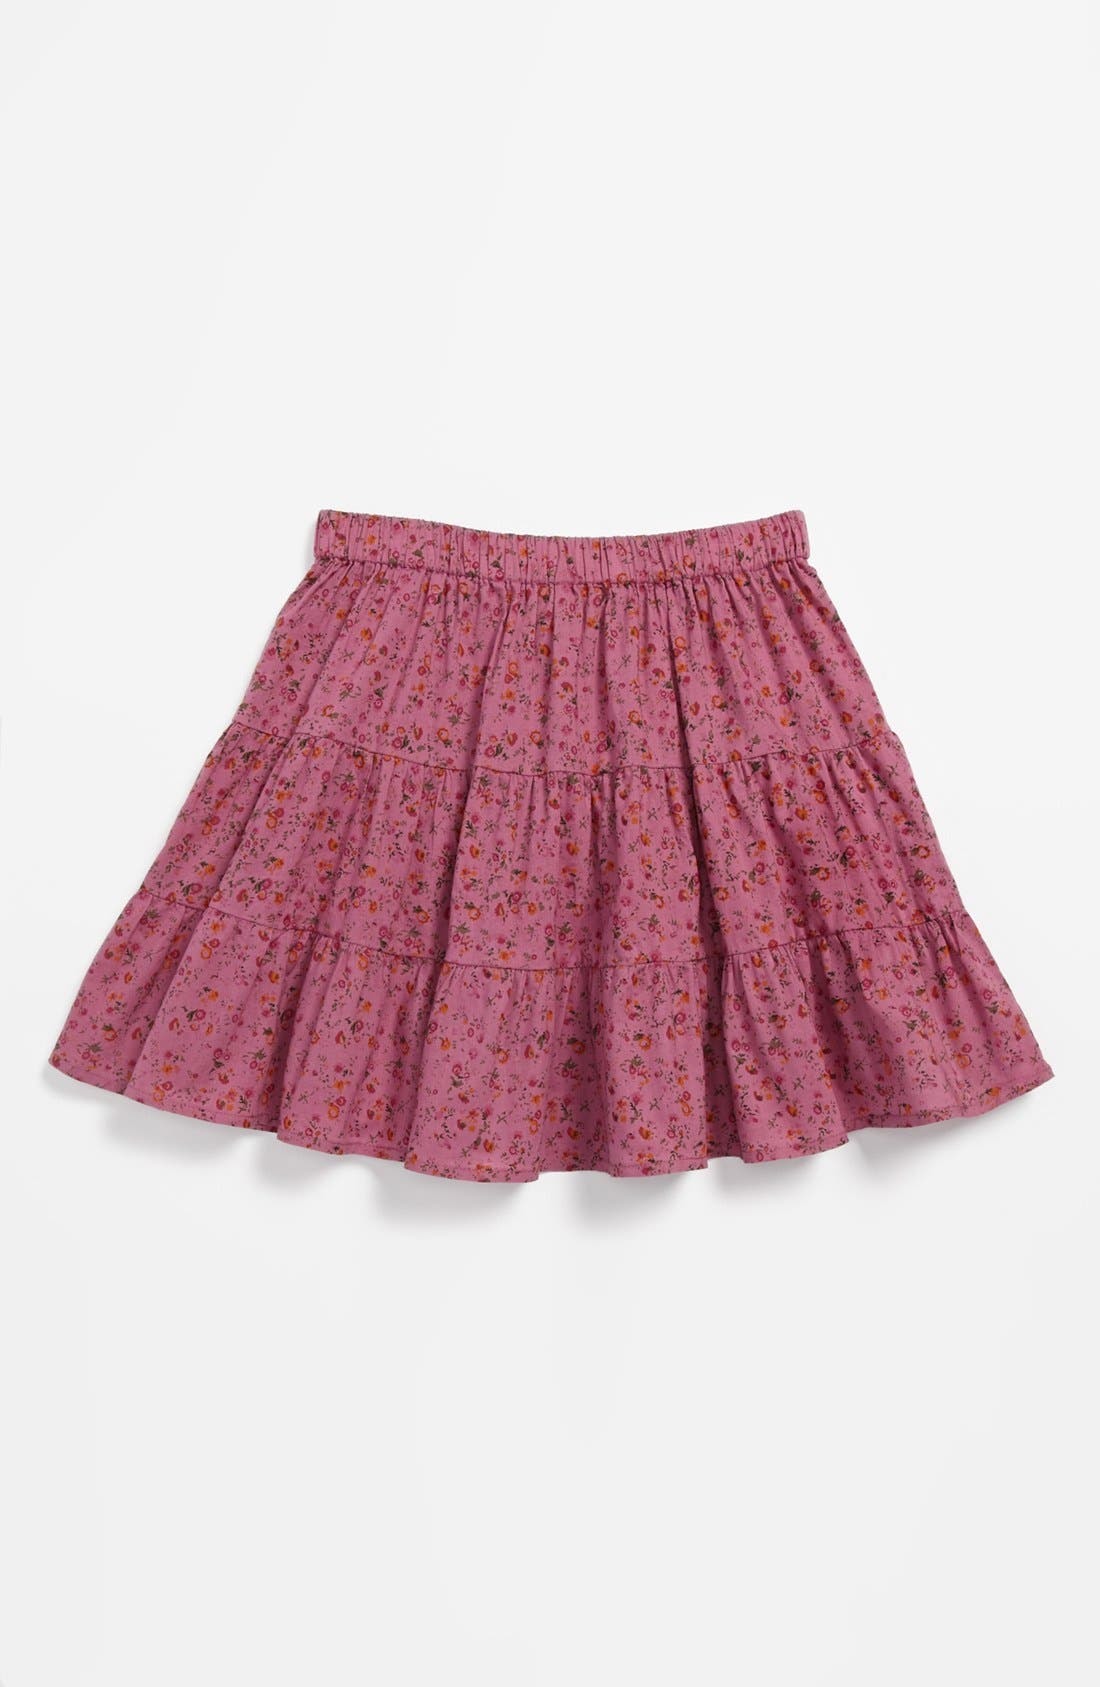 Alternate Image 1 Selected - Peek 'Alli' Skirt (Toddler Girls, Little Girls & Big Girls)